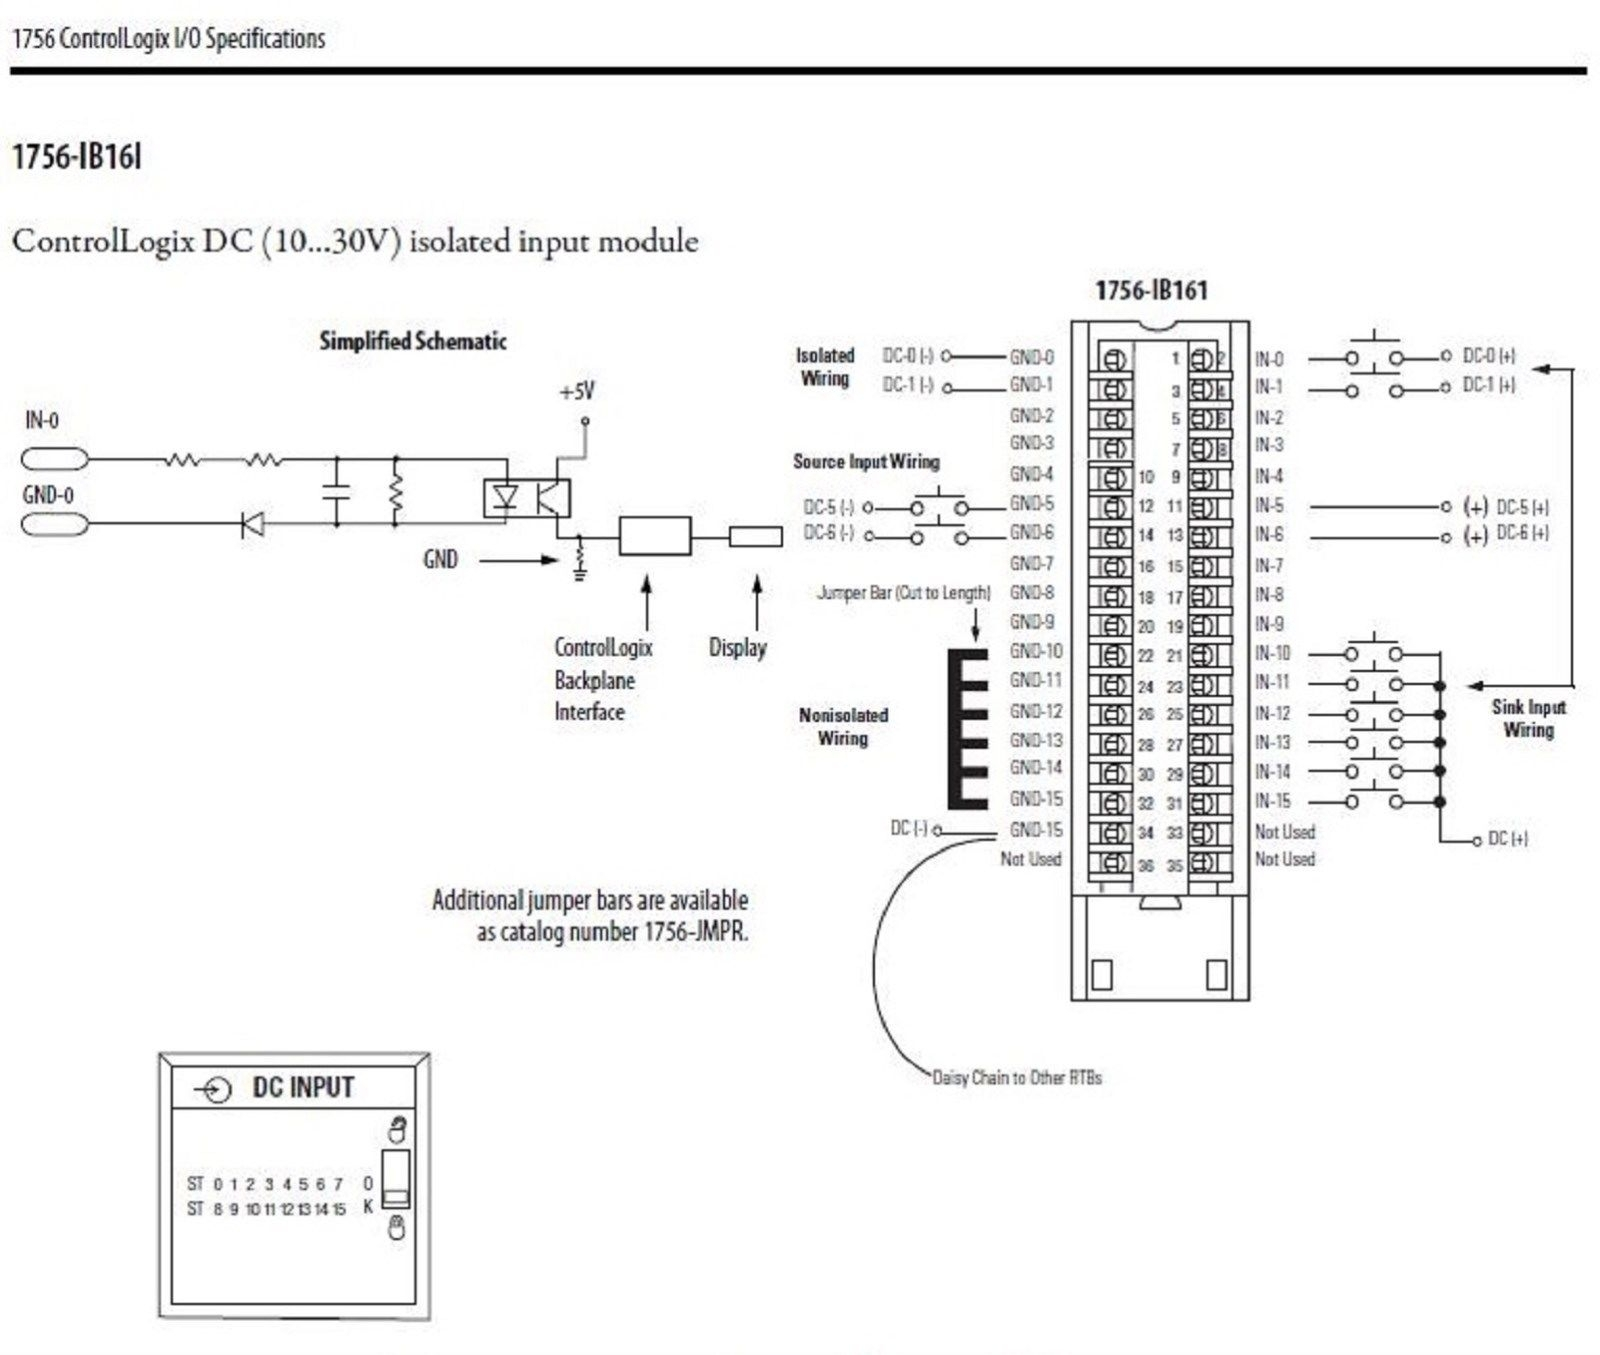 allen bradley 1756 of8 wiring diagram Download-Allen Bradley 1756 8 Wiring Diagram Old Fashioned Allen Bradley Wiring Diagram Book Vignette 8-h